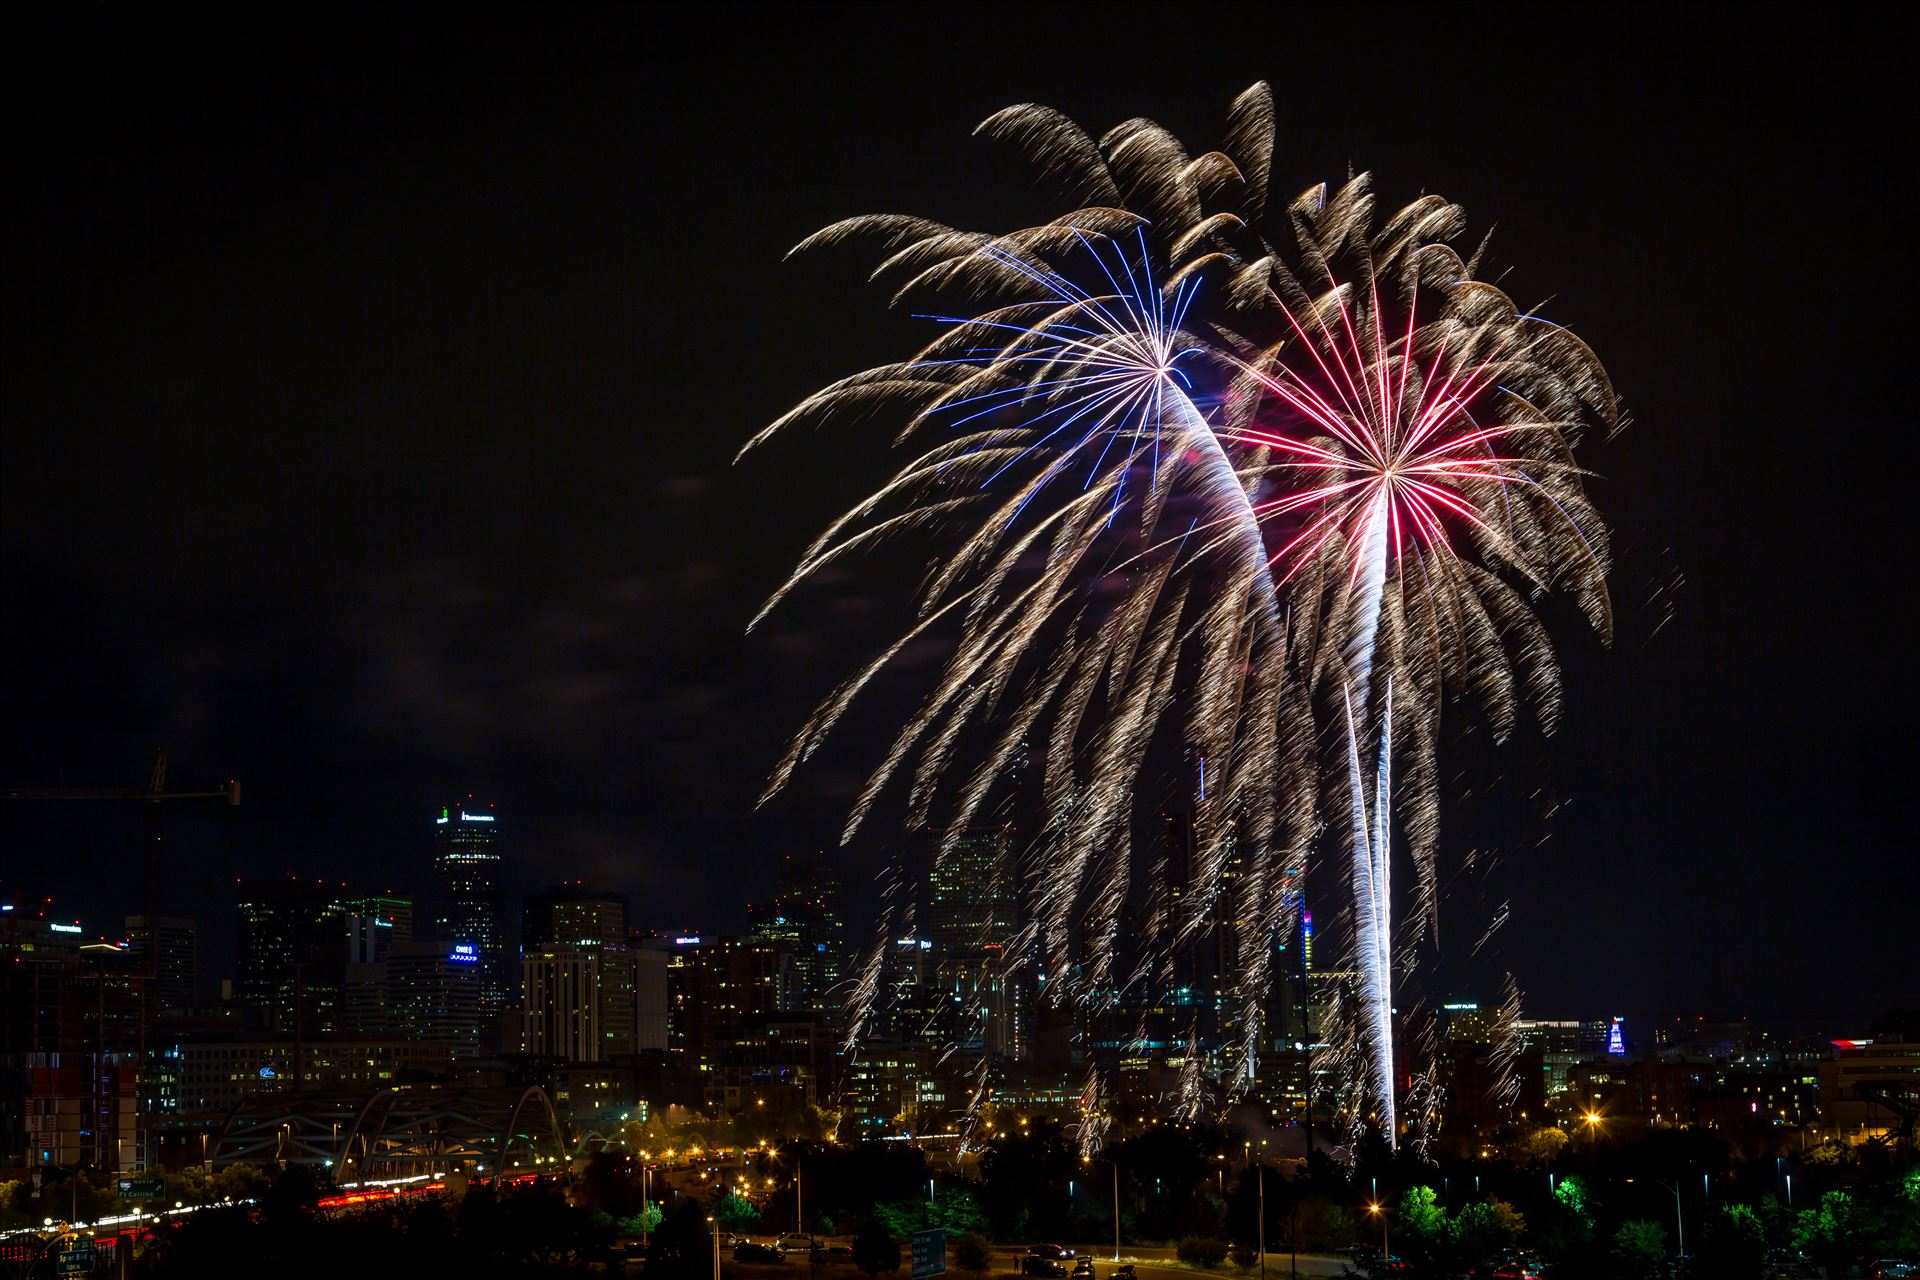 Elitch's Fireworks 2016 - Red White and Blue - Fireworks from Elitch Gardens, taken near Speer and Zuni in Denver, Colorado. by D Scott Smith